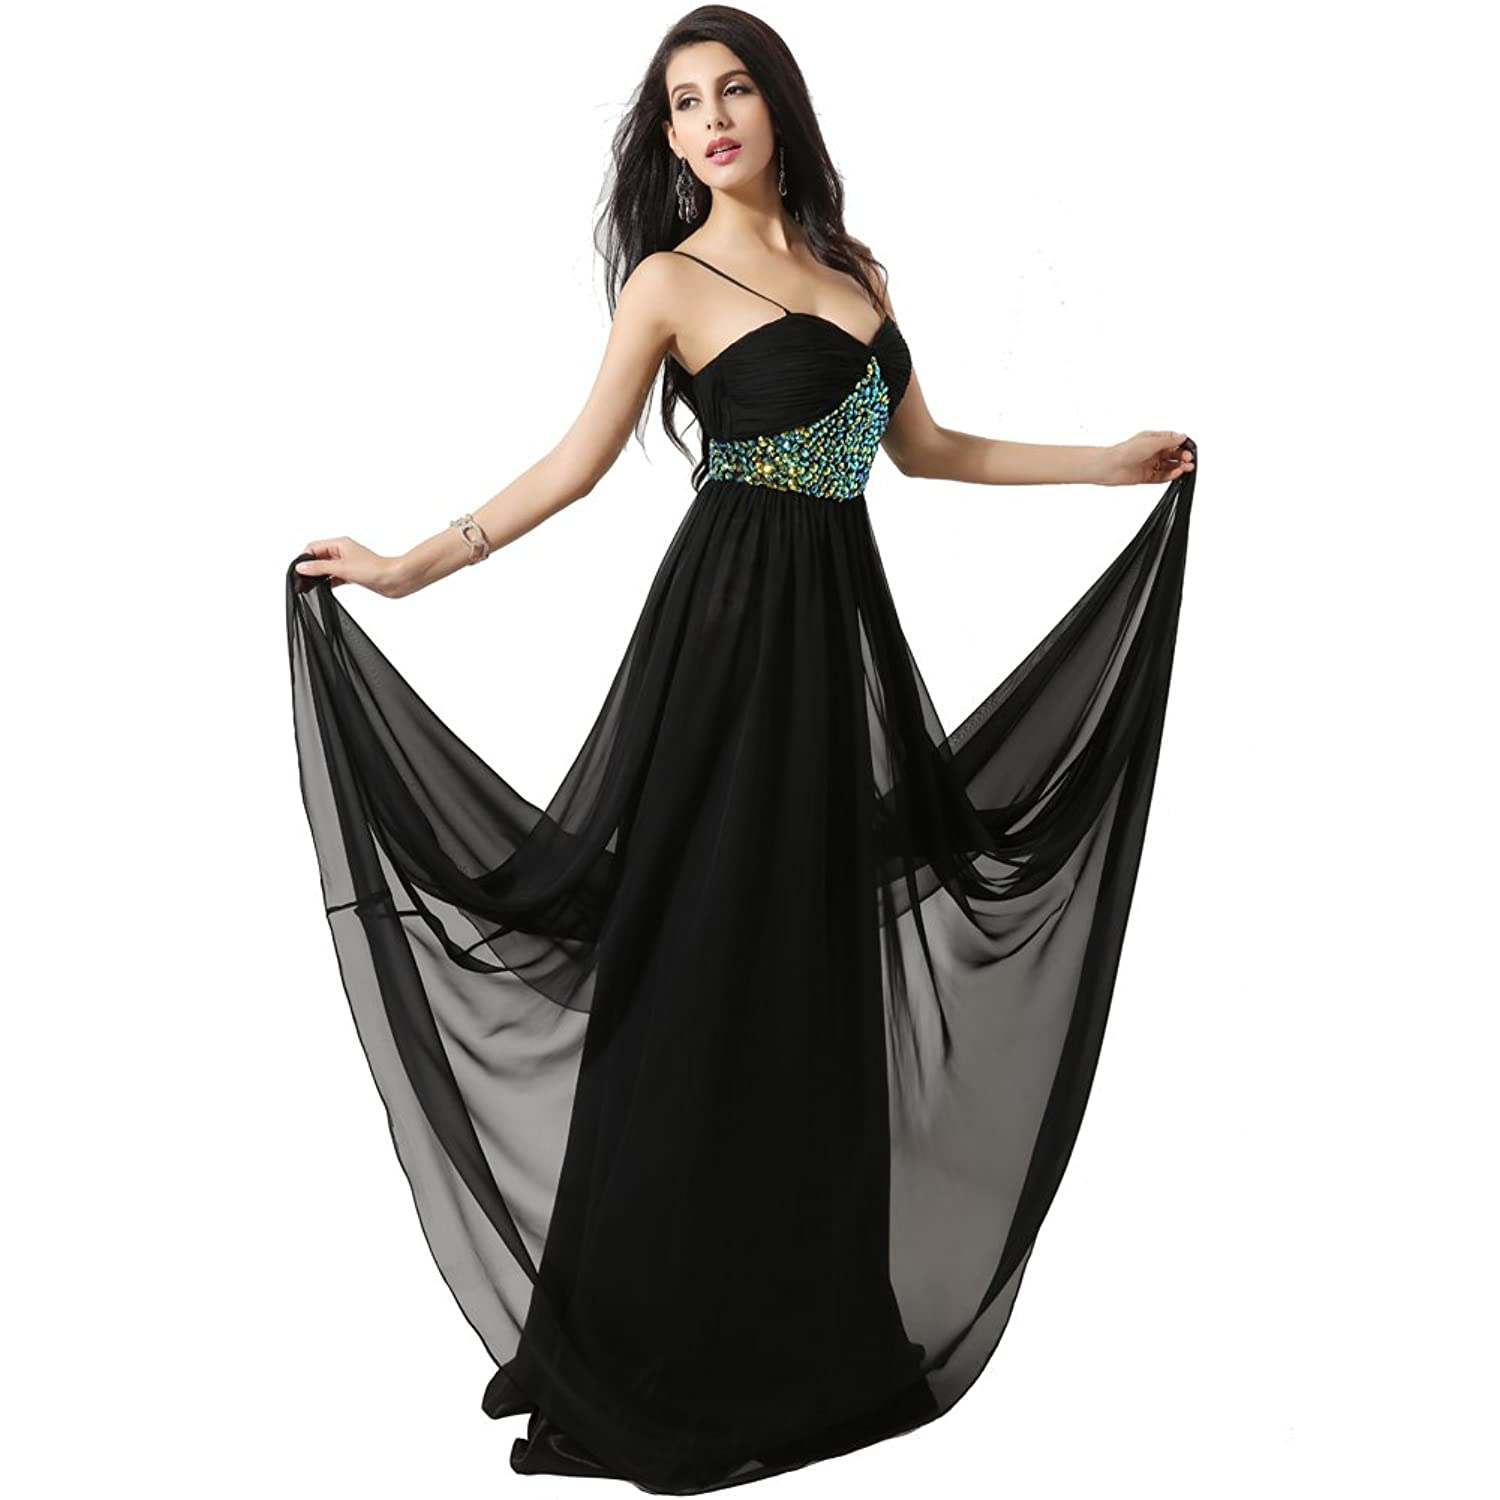 XinGe Women's Spaghetti Strap Formal Party Bridesmaid Evening Dress Long Chiffon Prom Gown